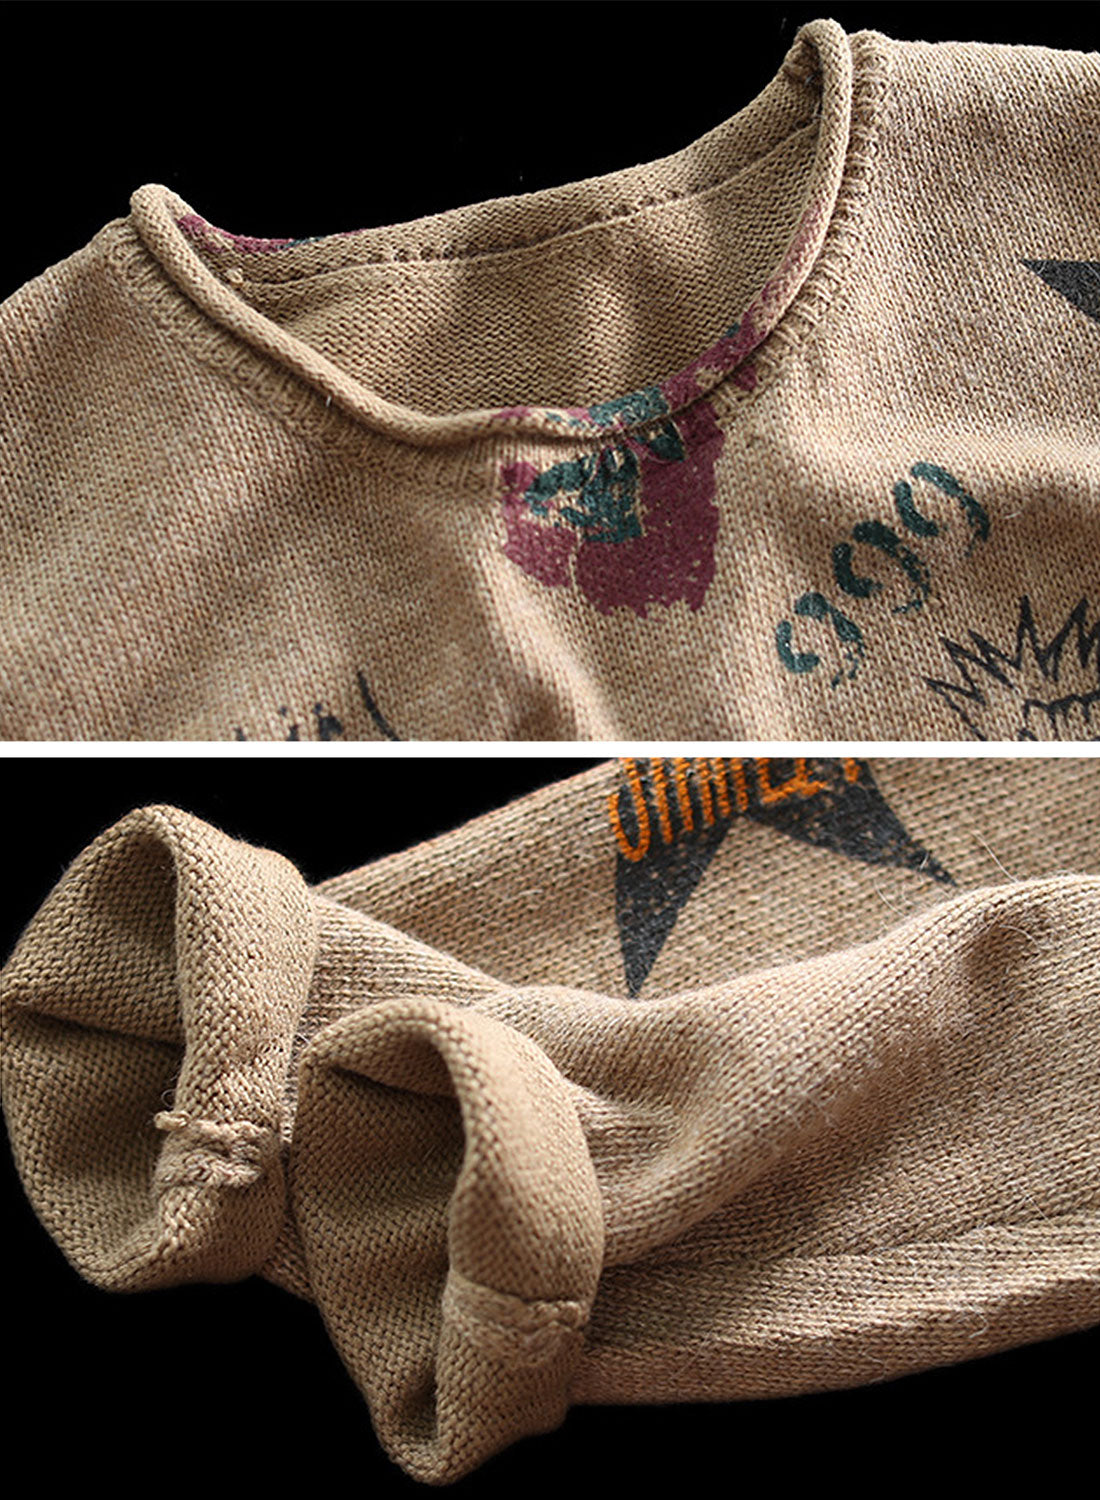 Star Words Printed Cotton Sweater Details 1